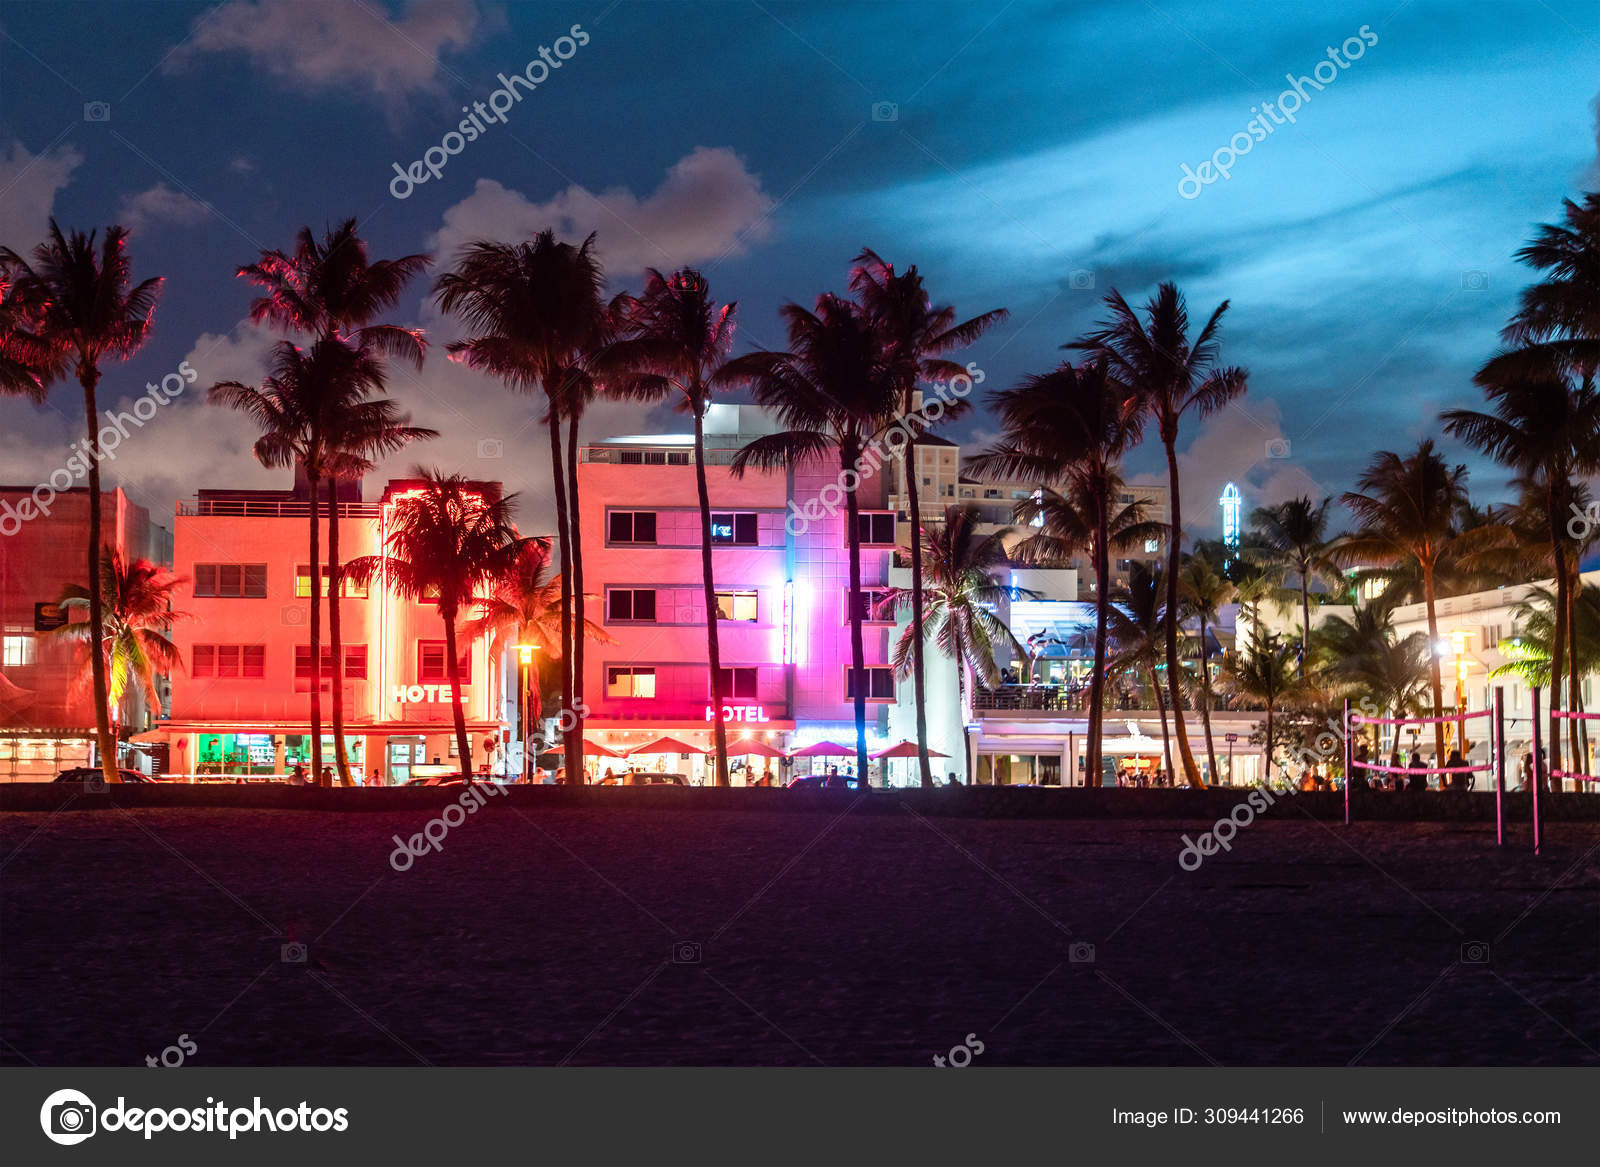 Miami Beach Ocean Drive Hotels And Restaurants At Sunset